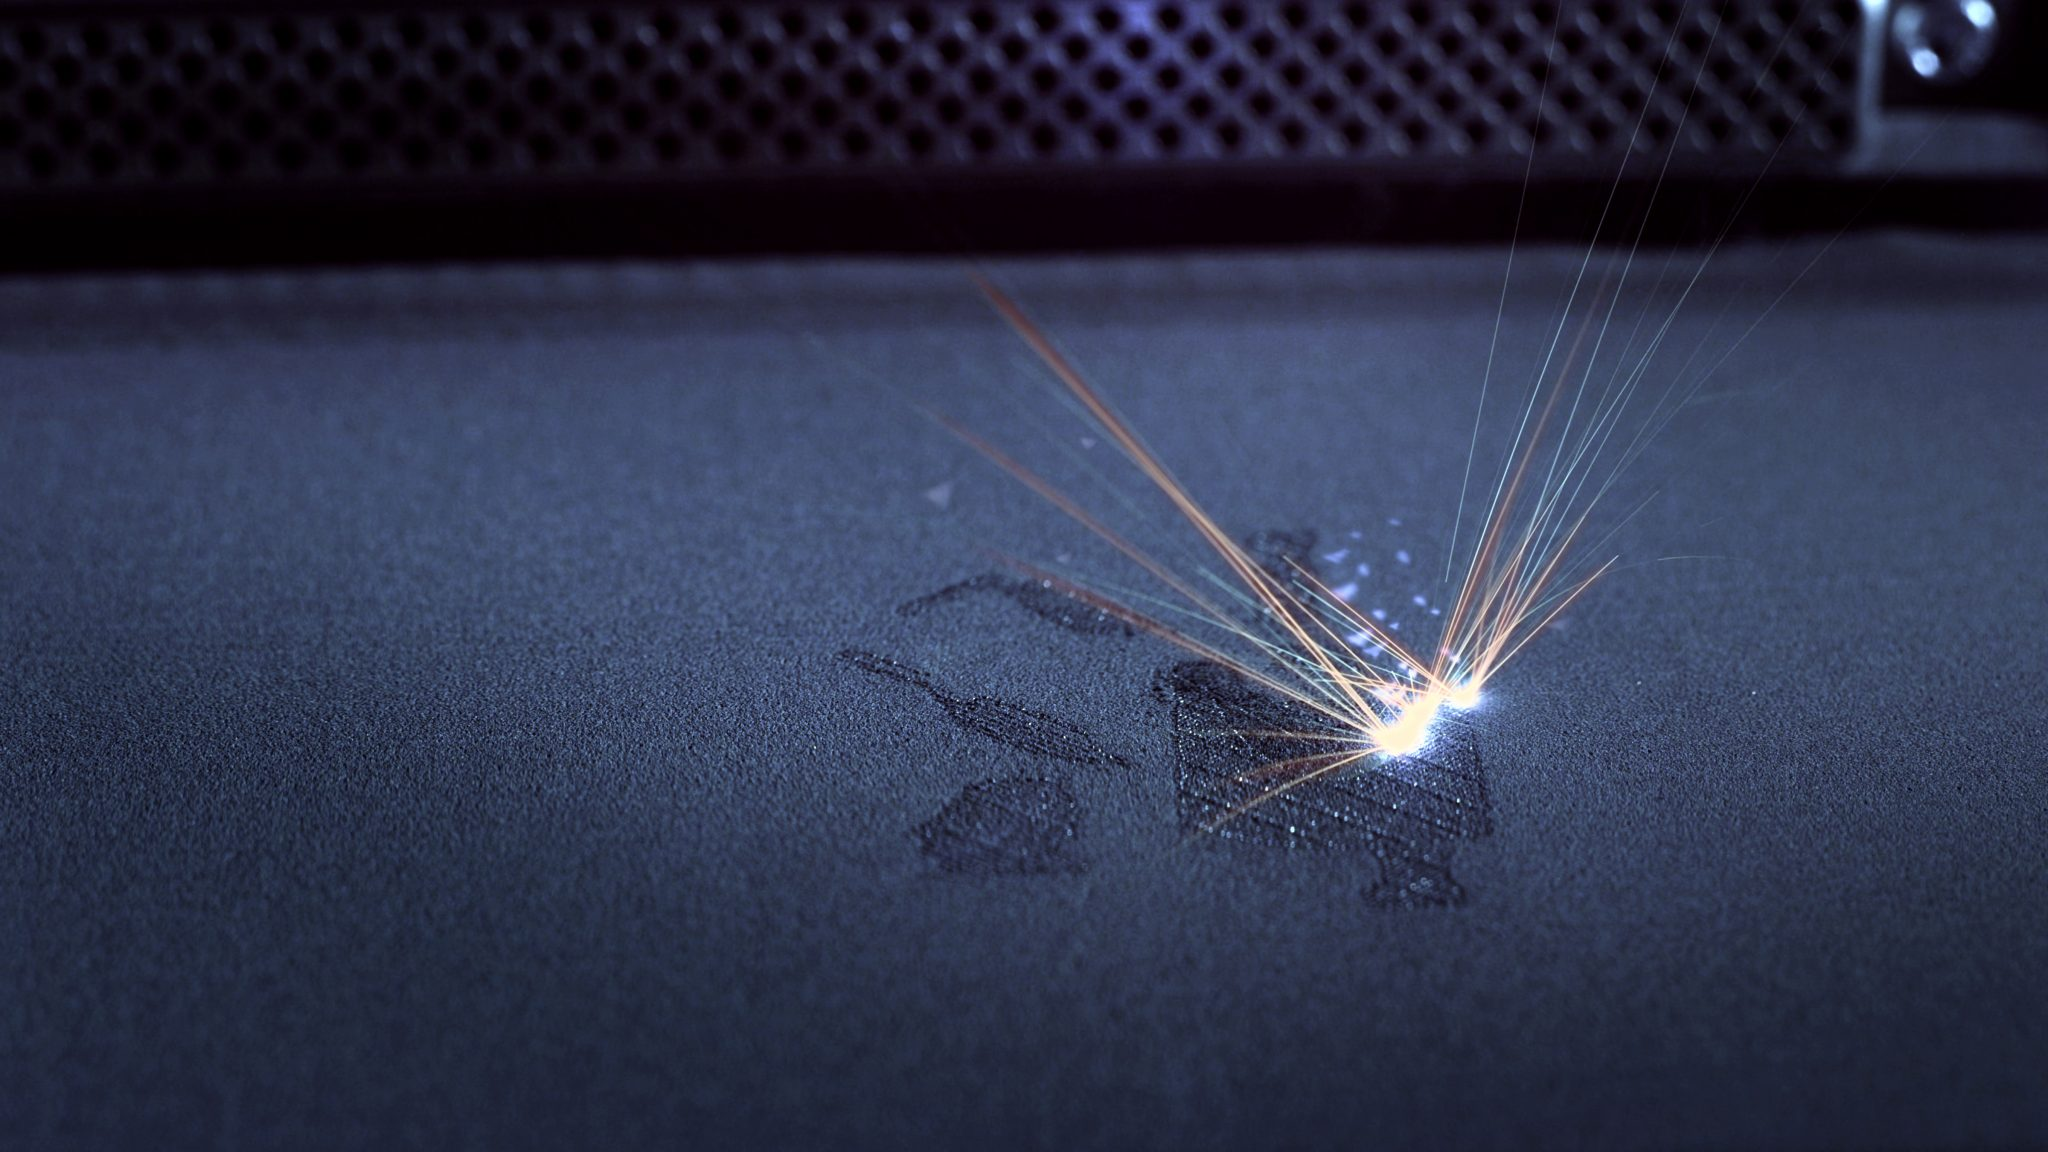 Laser powder bed fusion (LPBF) 3D printing in an EOS machine. Photo via EOS